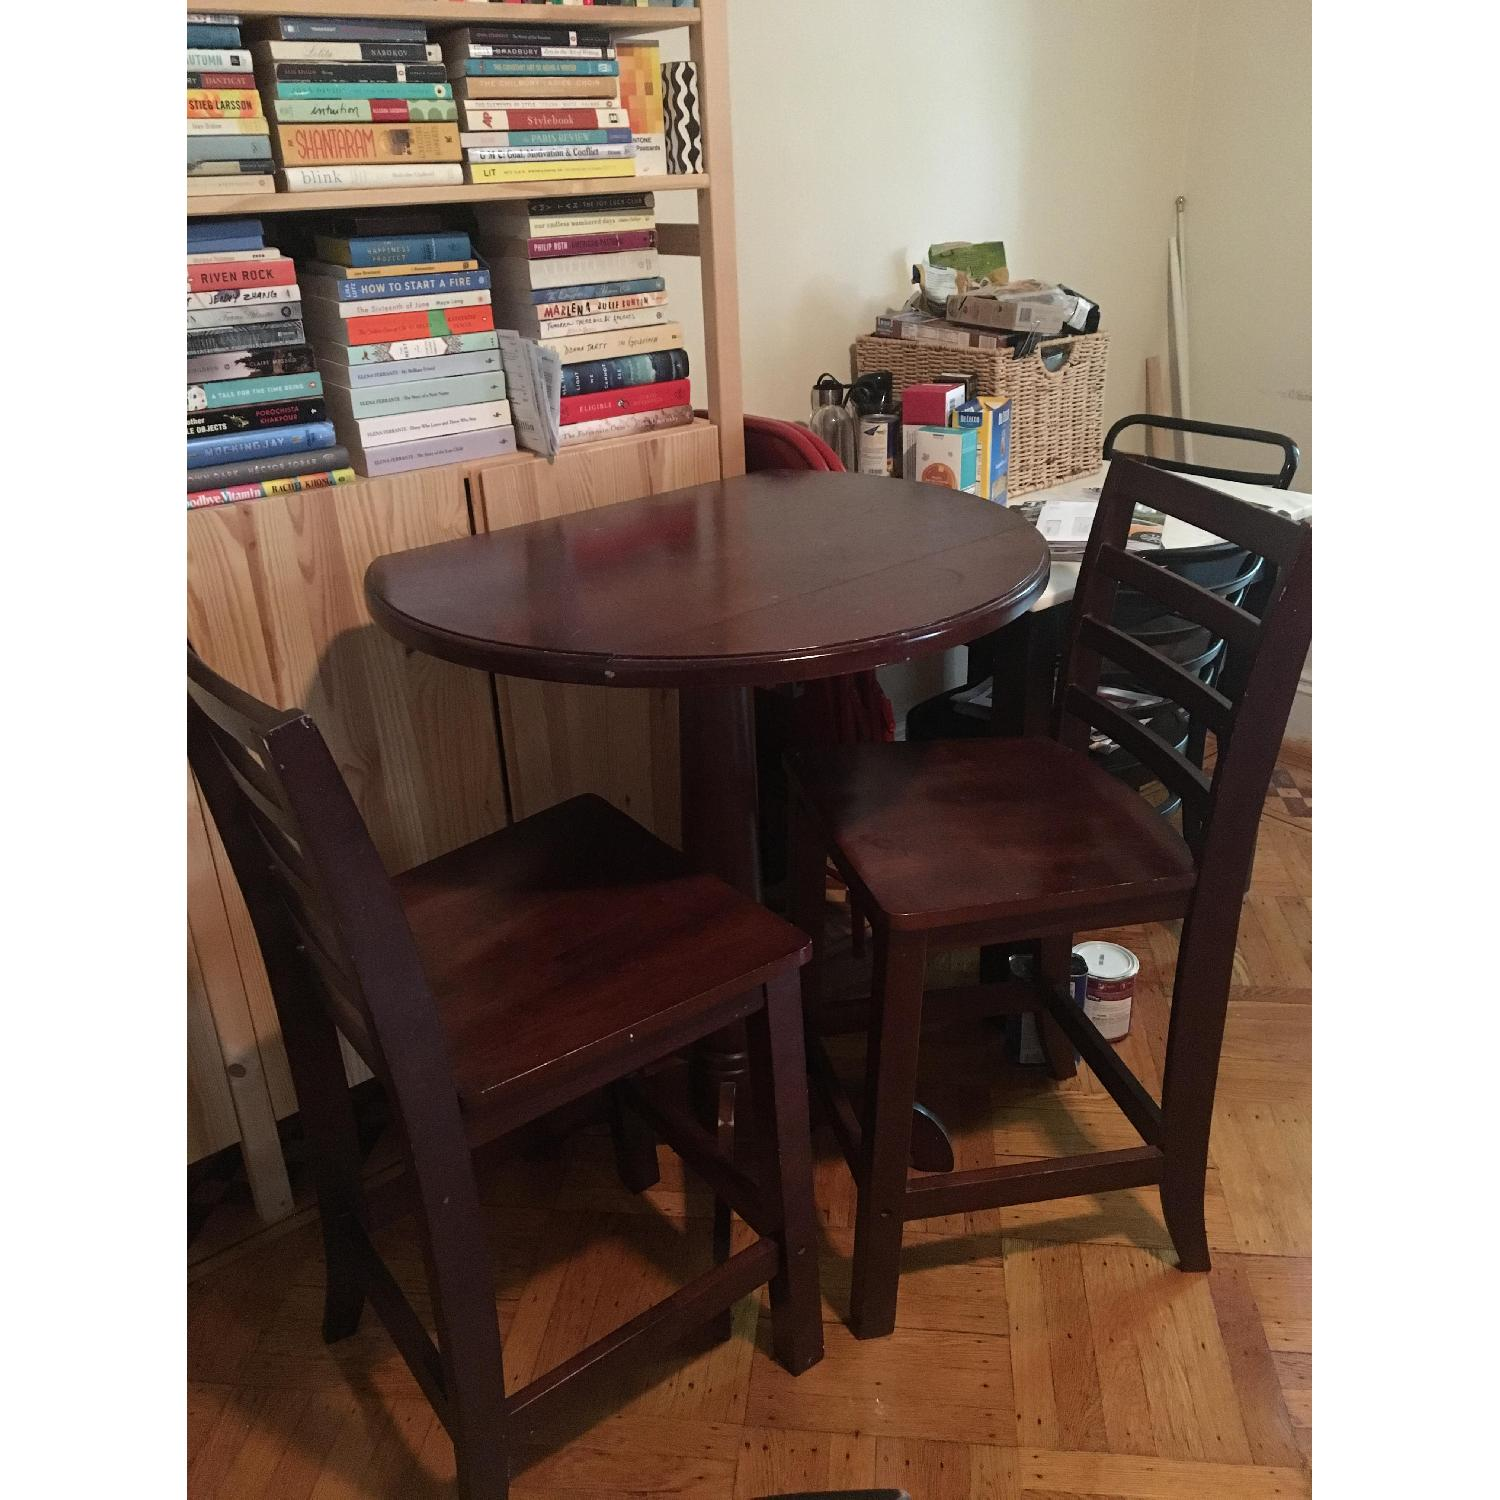 Wood Pub Table w/ 2 Chairs - image-2